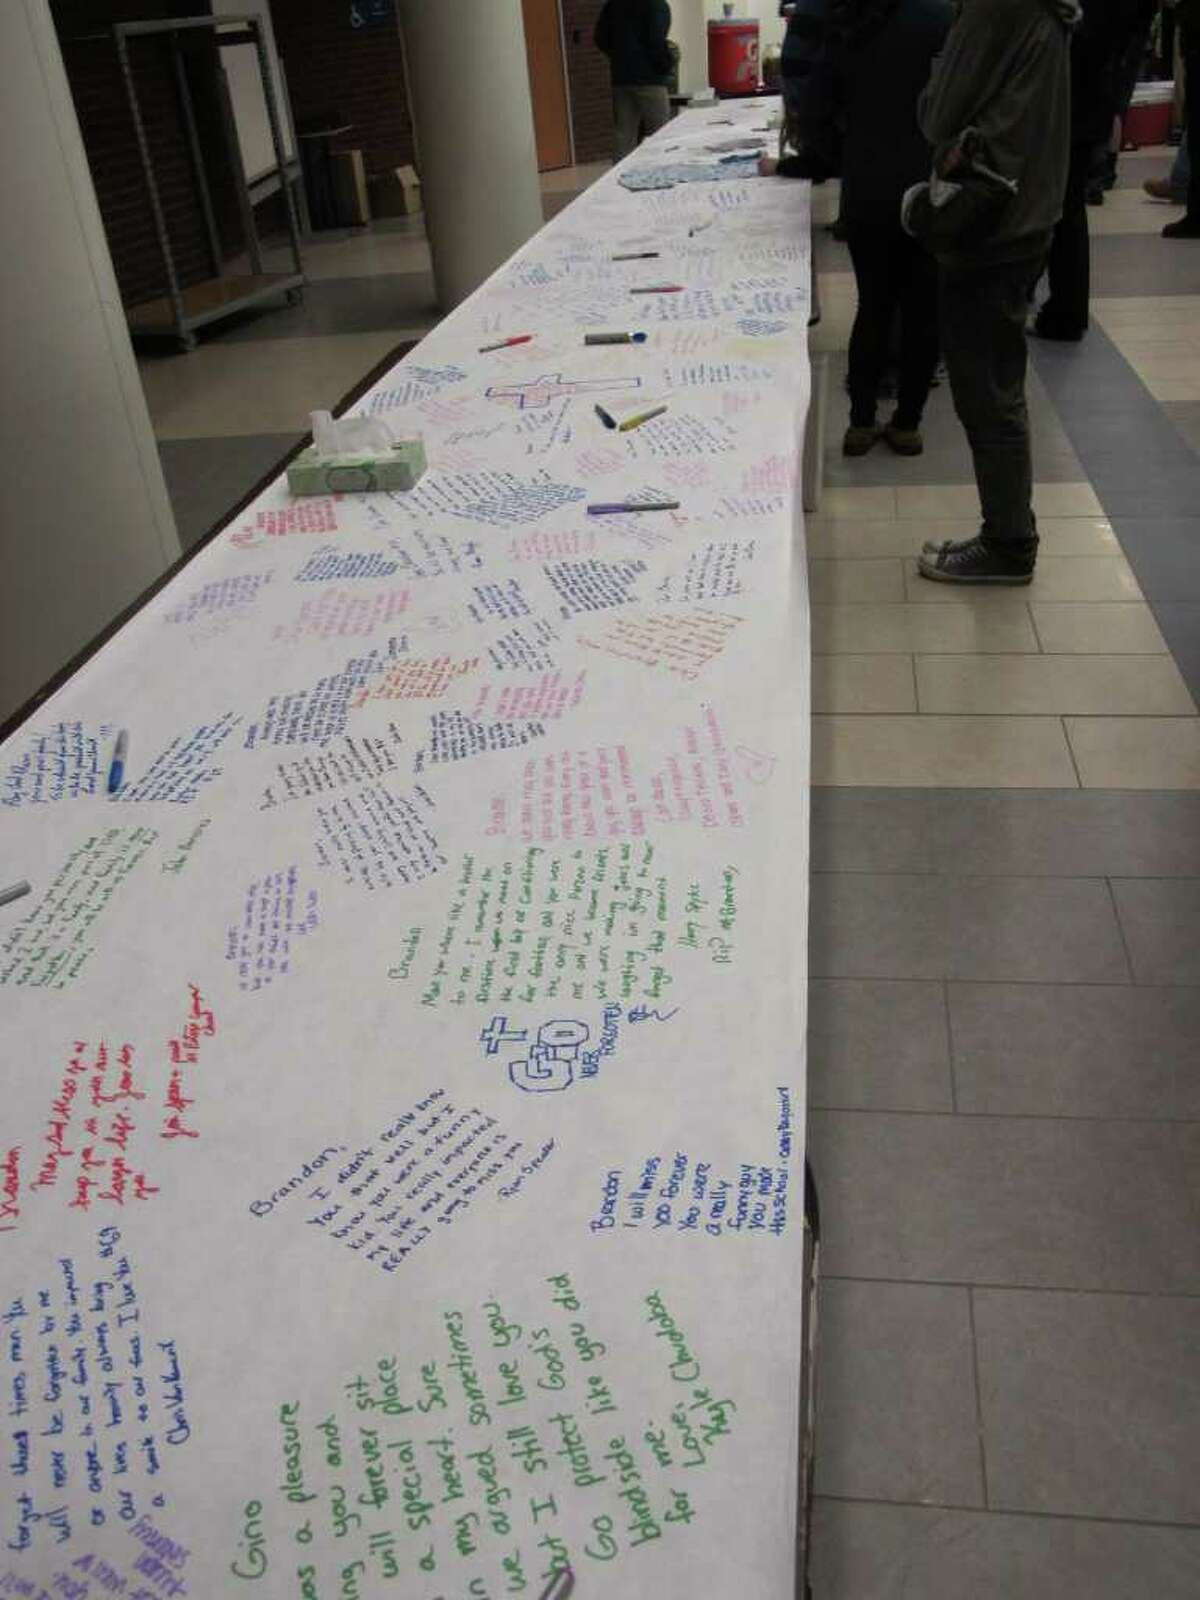 Hundreds of students, along with parents and teachers, staged an all-day vigil Saturday at Oxford High School for Brandon Giordano, who was killed in a crash late Friday night. In the lobby, students expressed their sorrow by writing on a 36-foot table covered with a long roll of paper. On Monday, grief counselors will be on hand to meet with students.